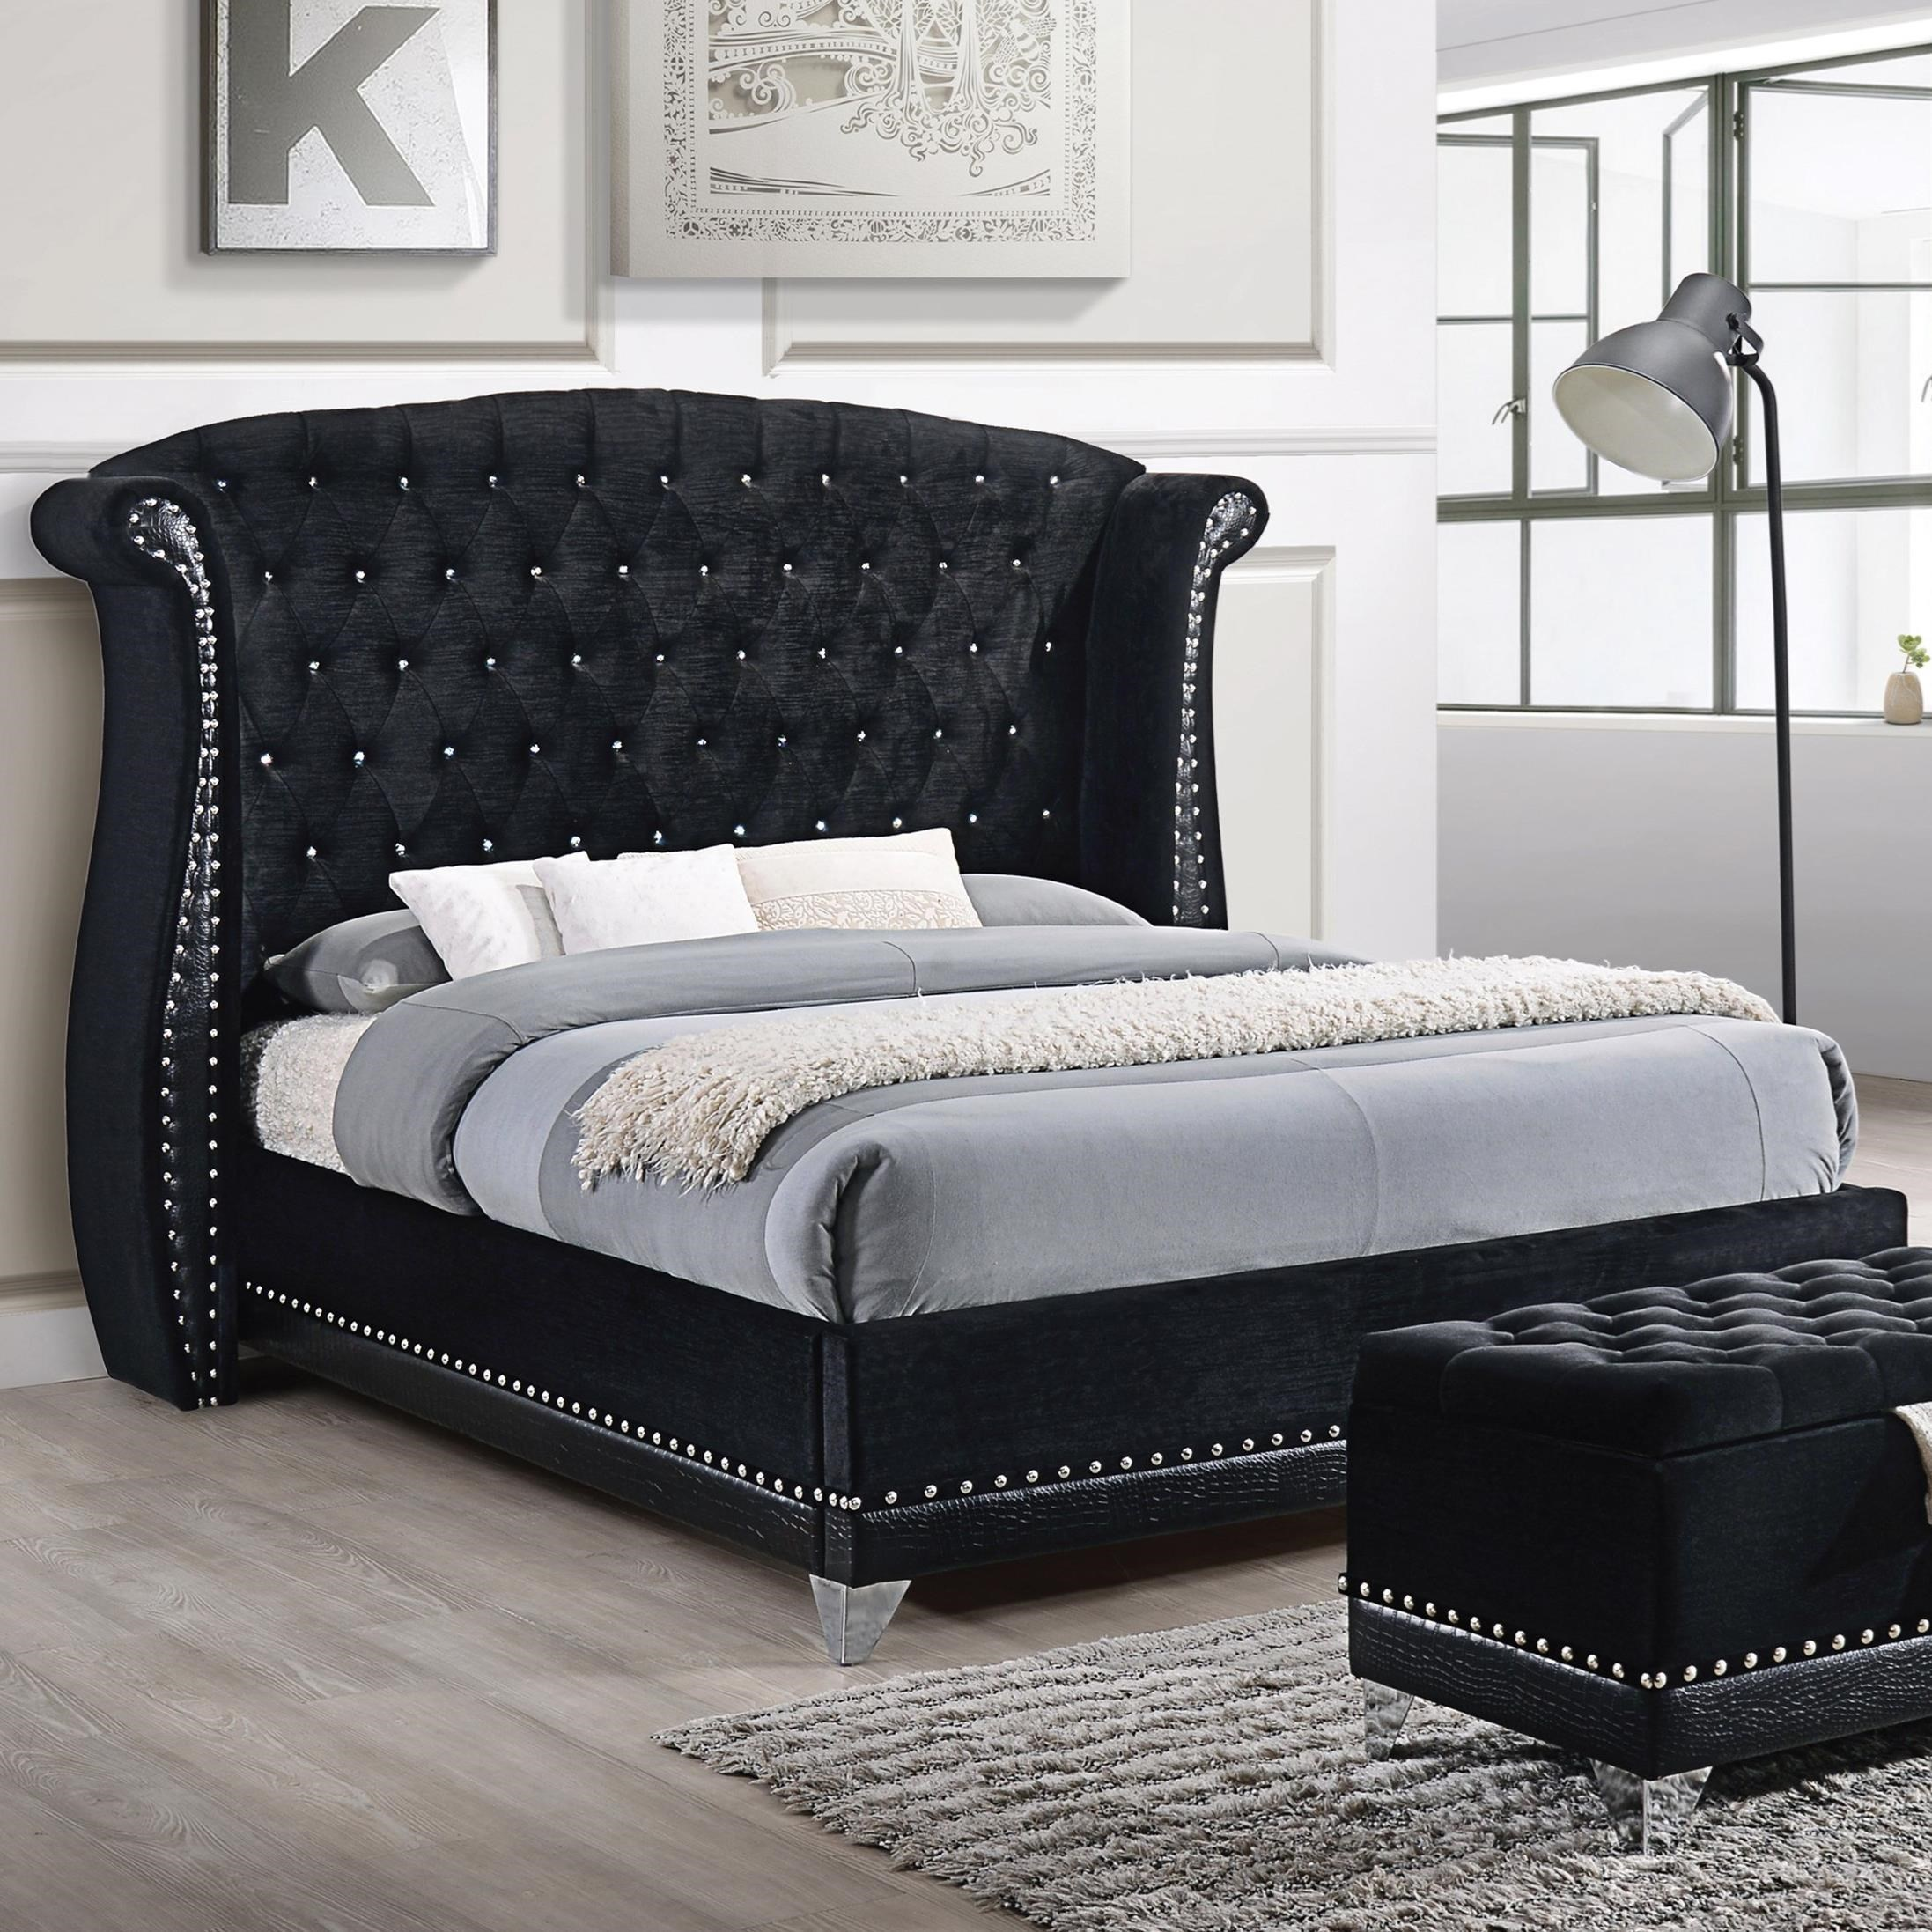 Coaster Barzini Glamorous Upholstered California King Bed A1 Furniture Mattress Upholstered Beds